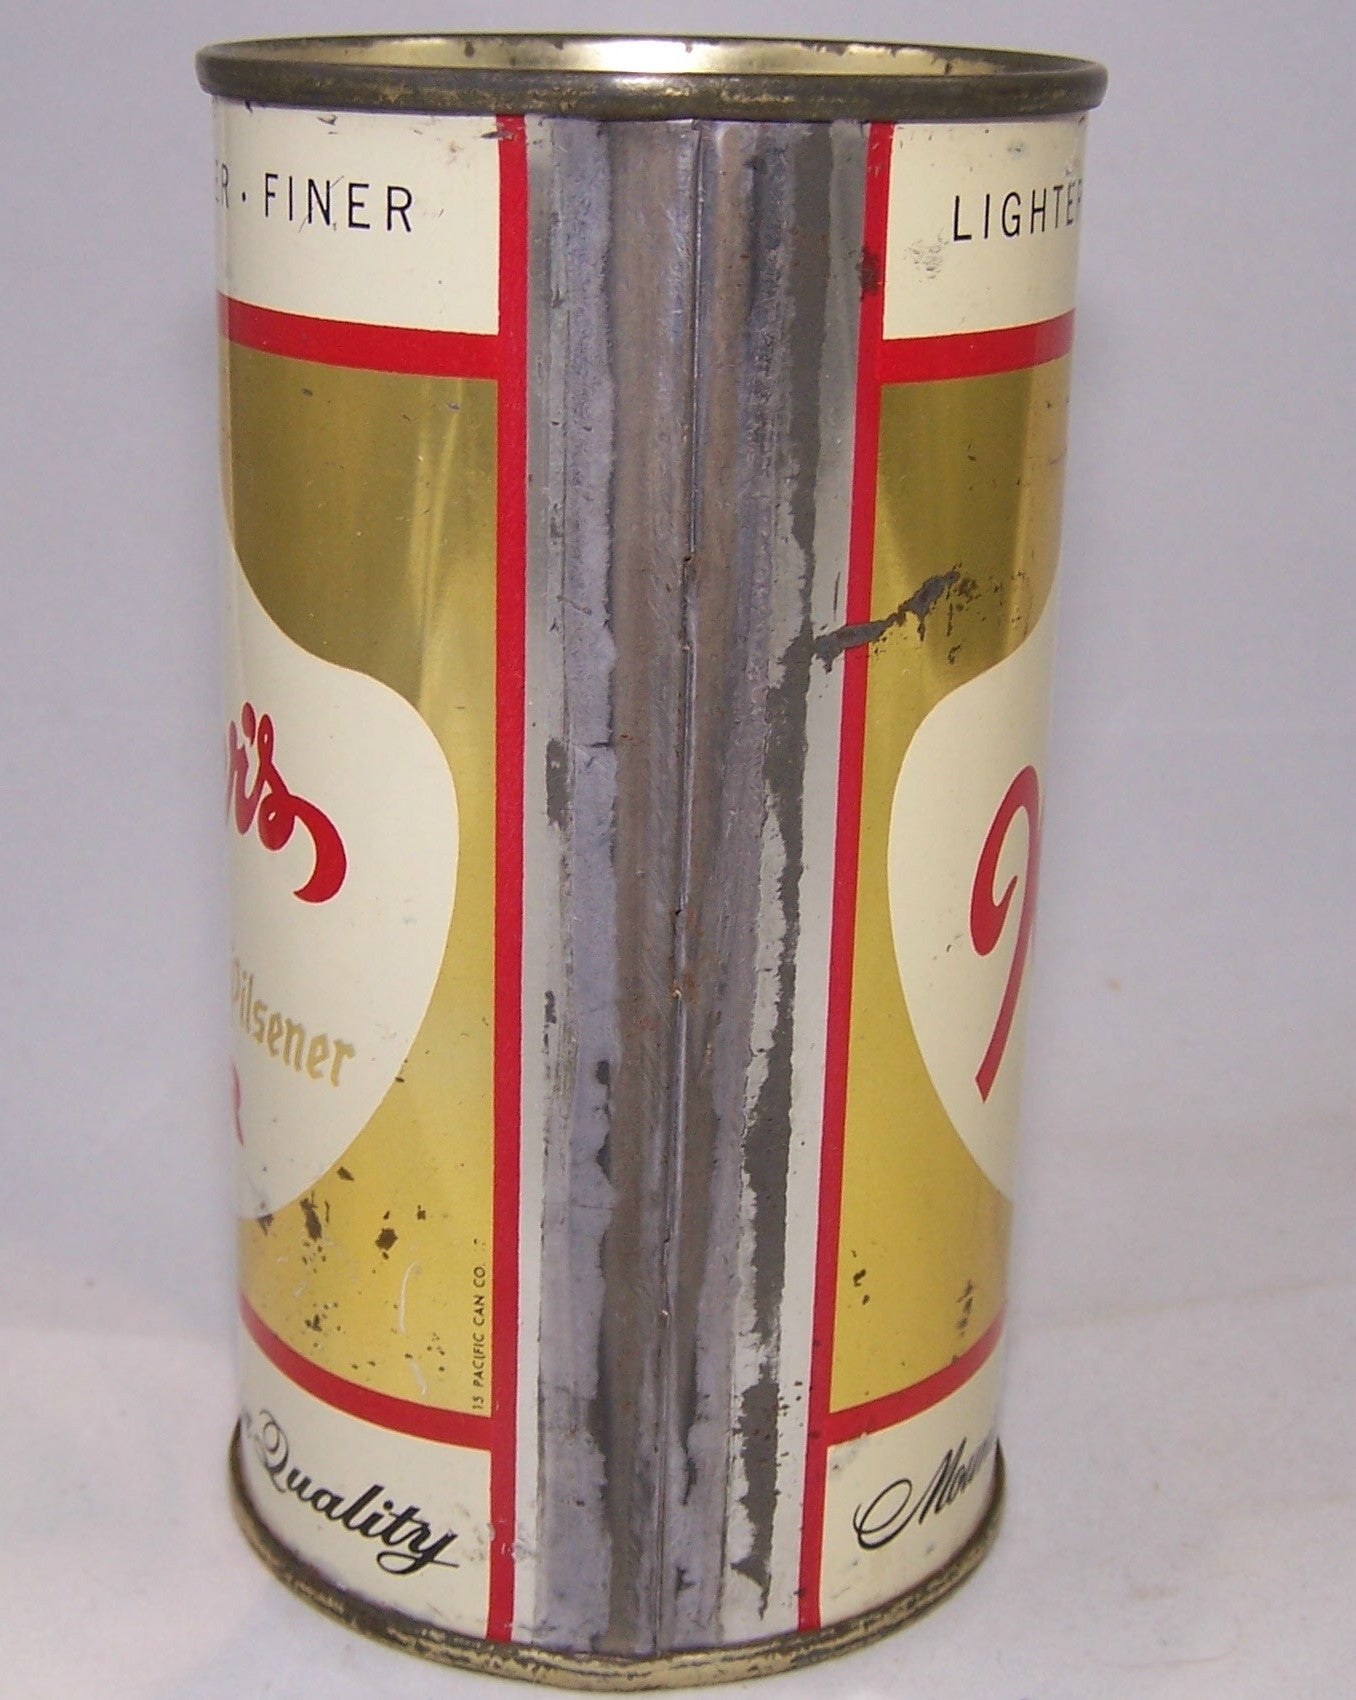 Walter's Premium Pilsener Beer, USBC 144-17, Grade 1-  Sold on 02/23/18